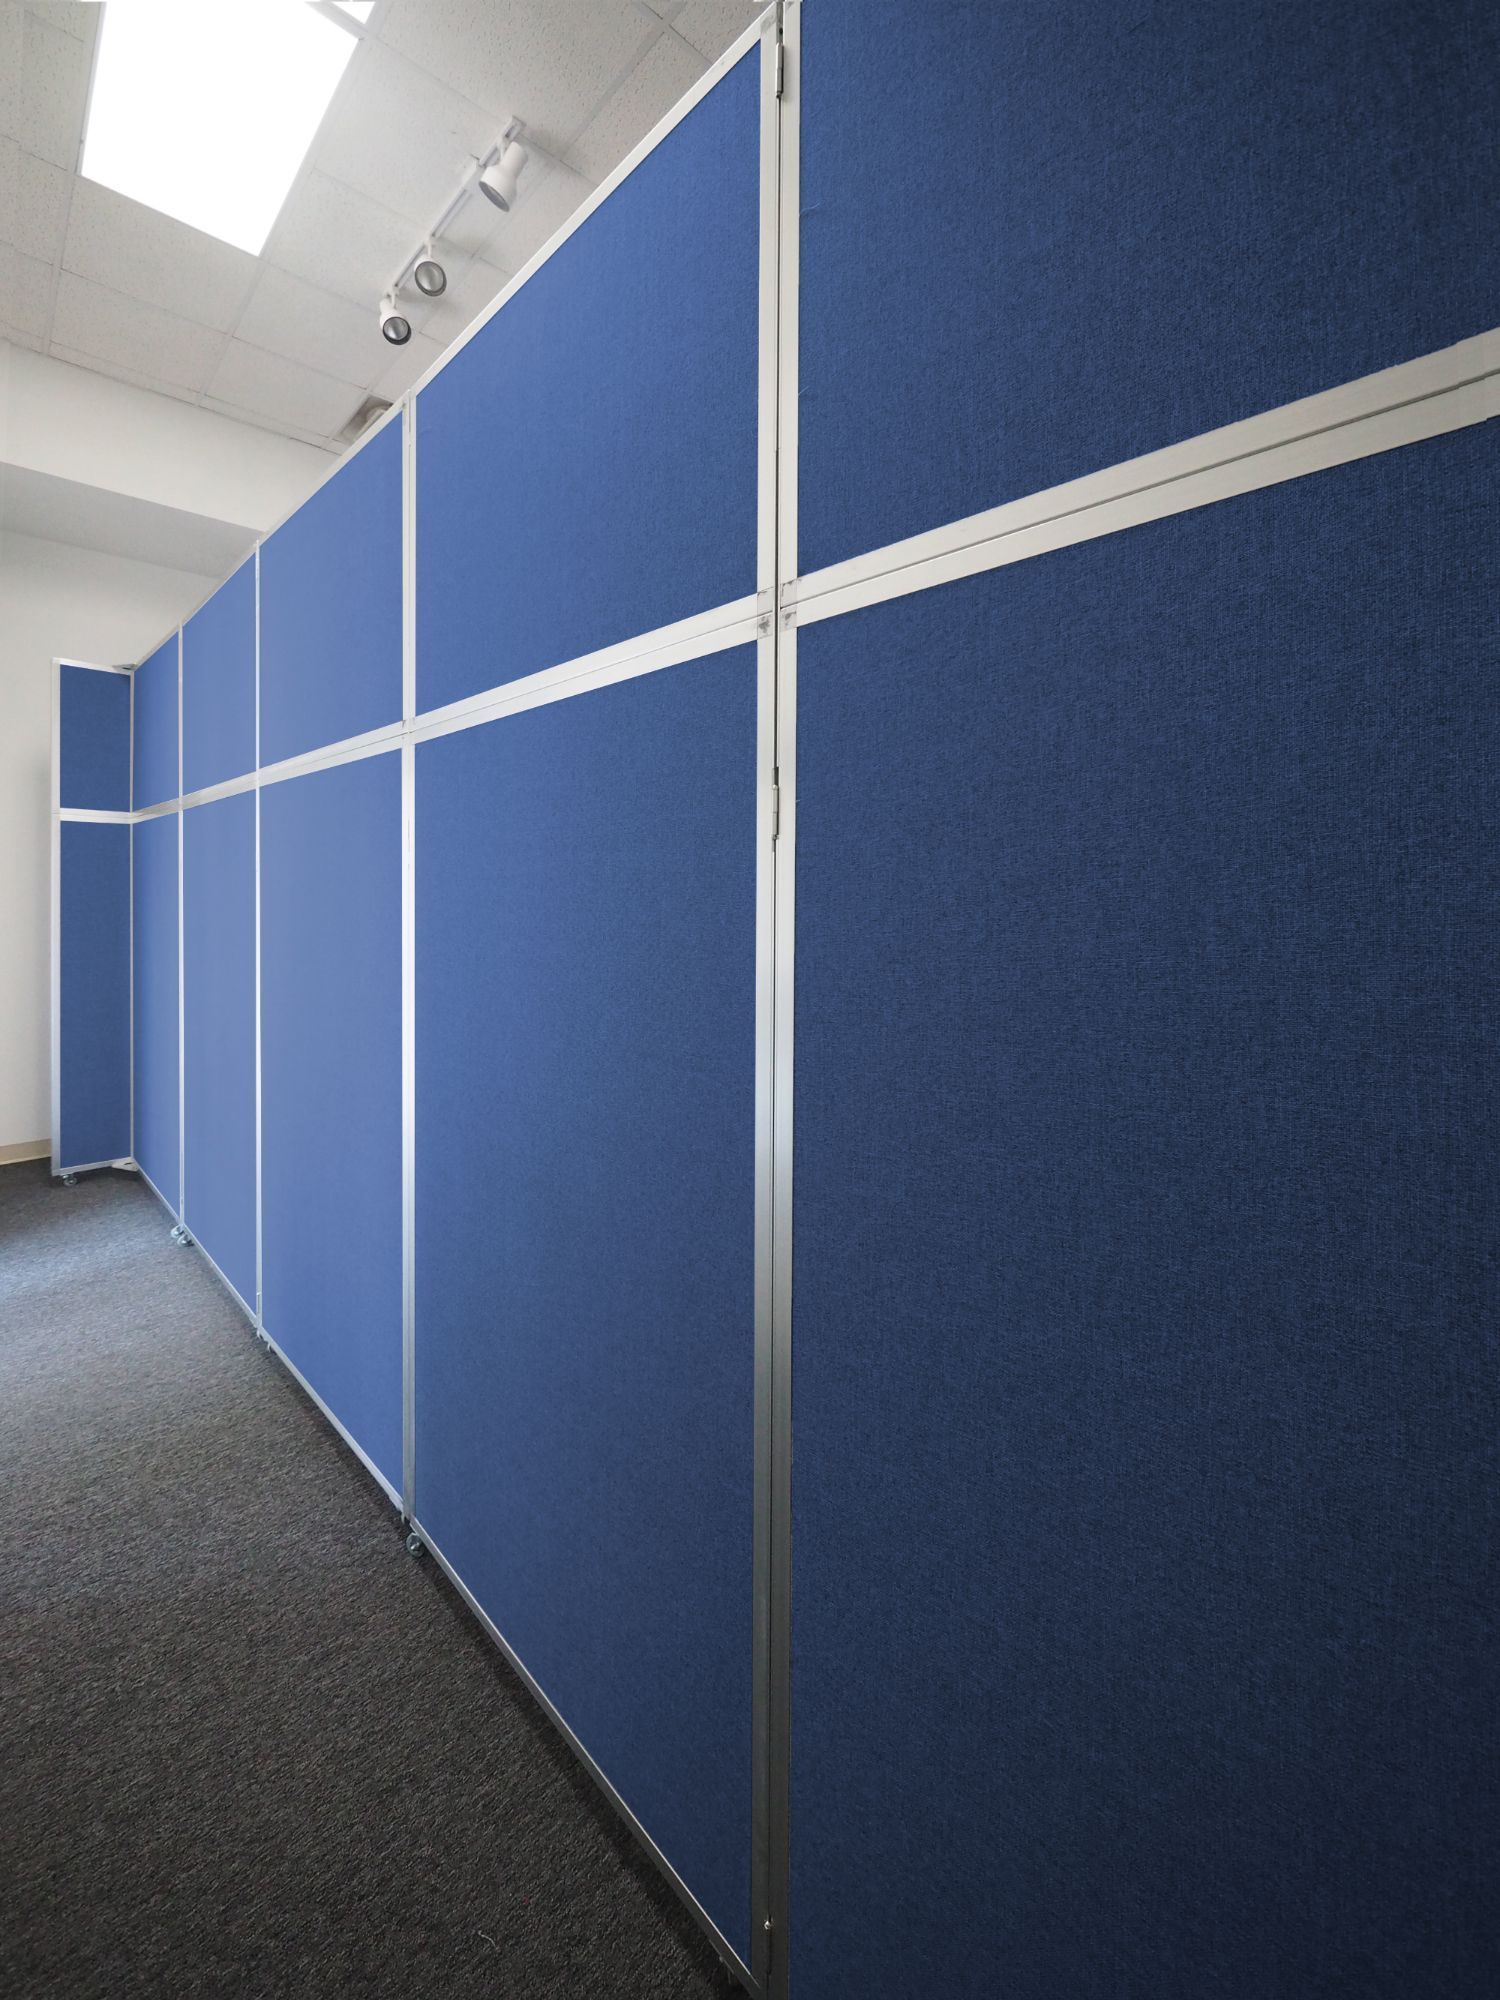 Our operable wall room dividers provide an affordable alternative to